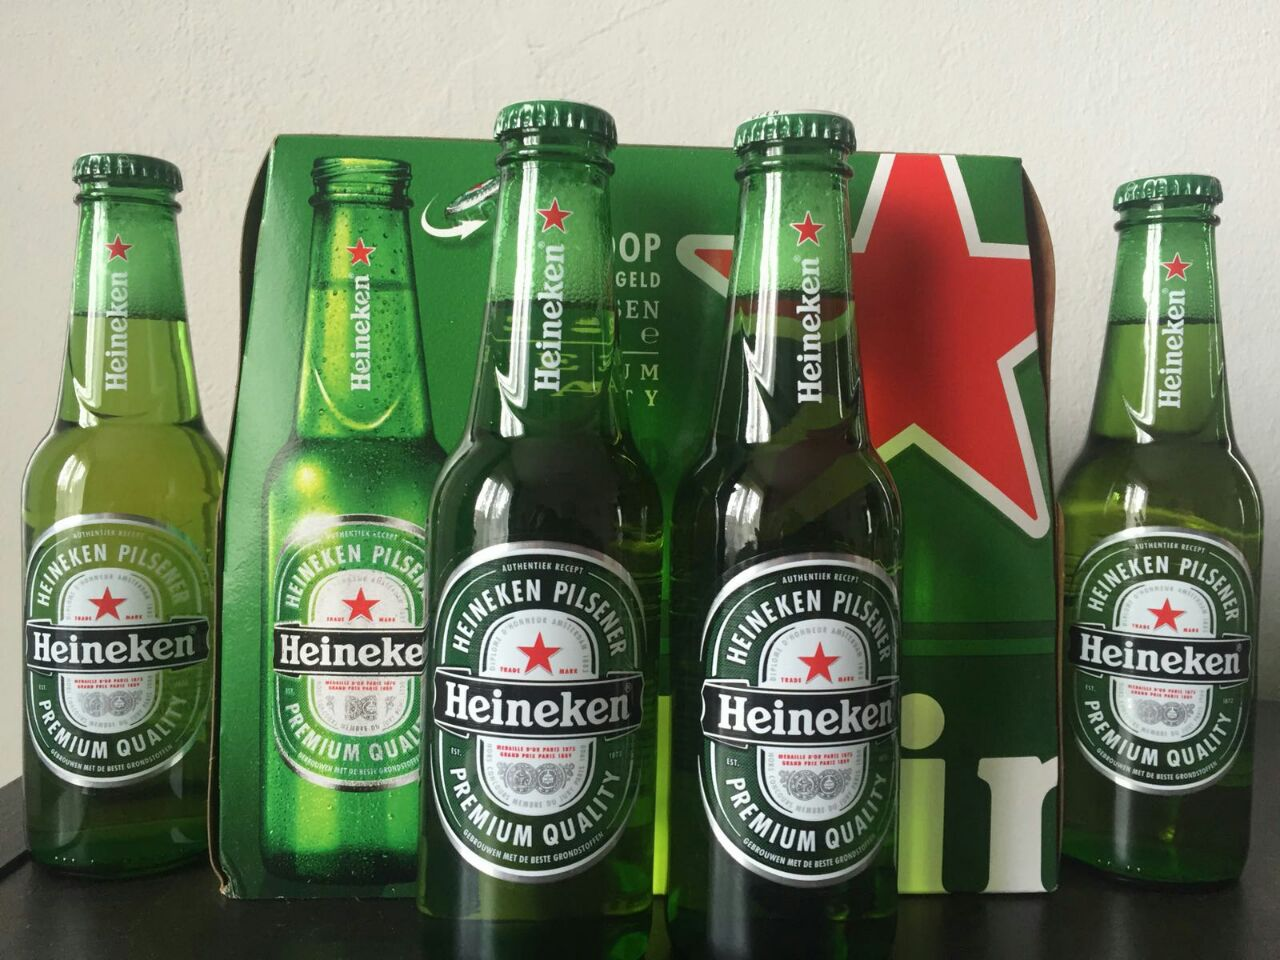 Heineken Lager Beer 25cl x 24 Glass Bottles